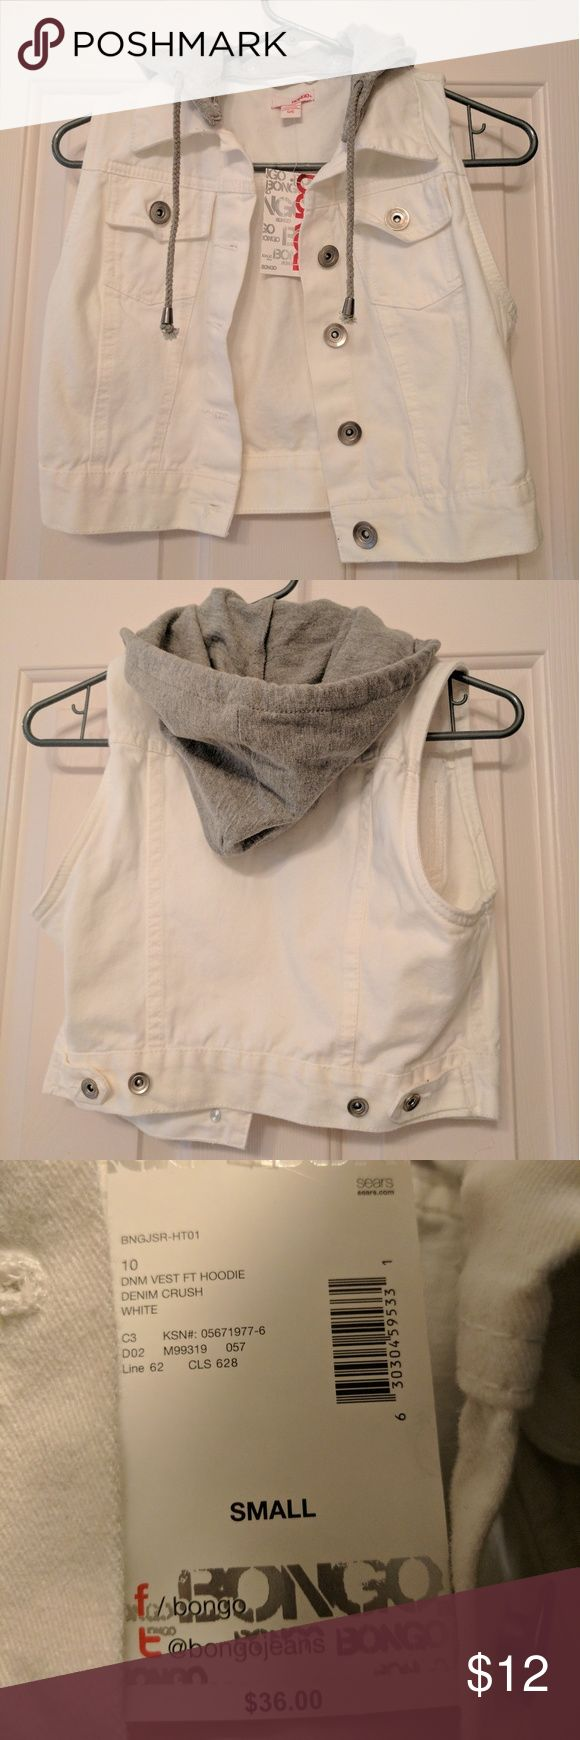 White Denim Vest with Removable Hood This white denim vest will go great over just about any tank or long sleeve. Can be worn without the hood which removes with buttons.  Brand new with tags. Size small. BONGO Tops Sweatshirts & Hoodies